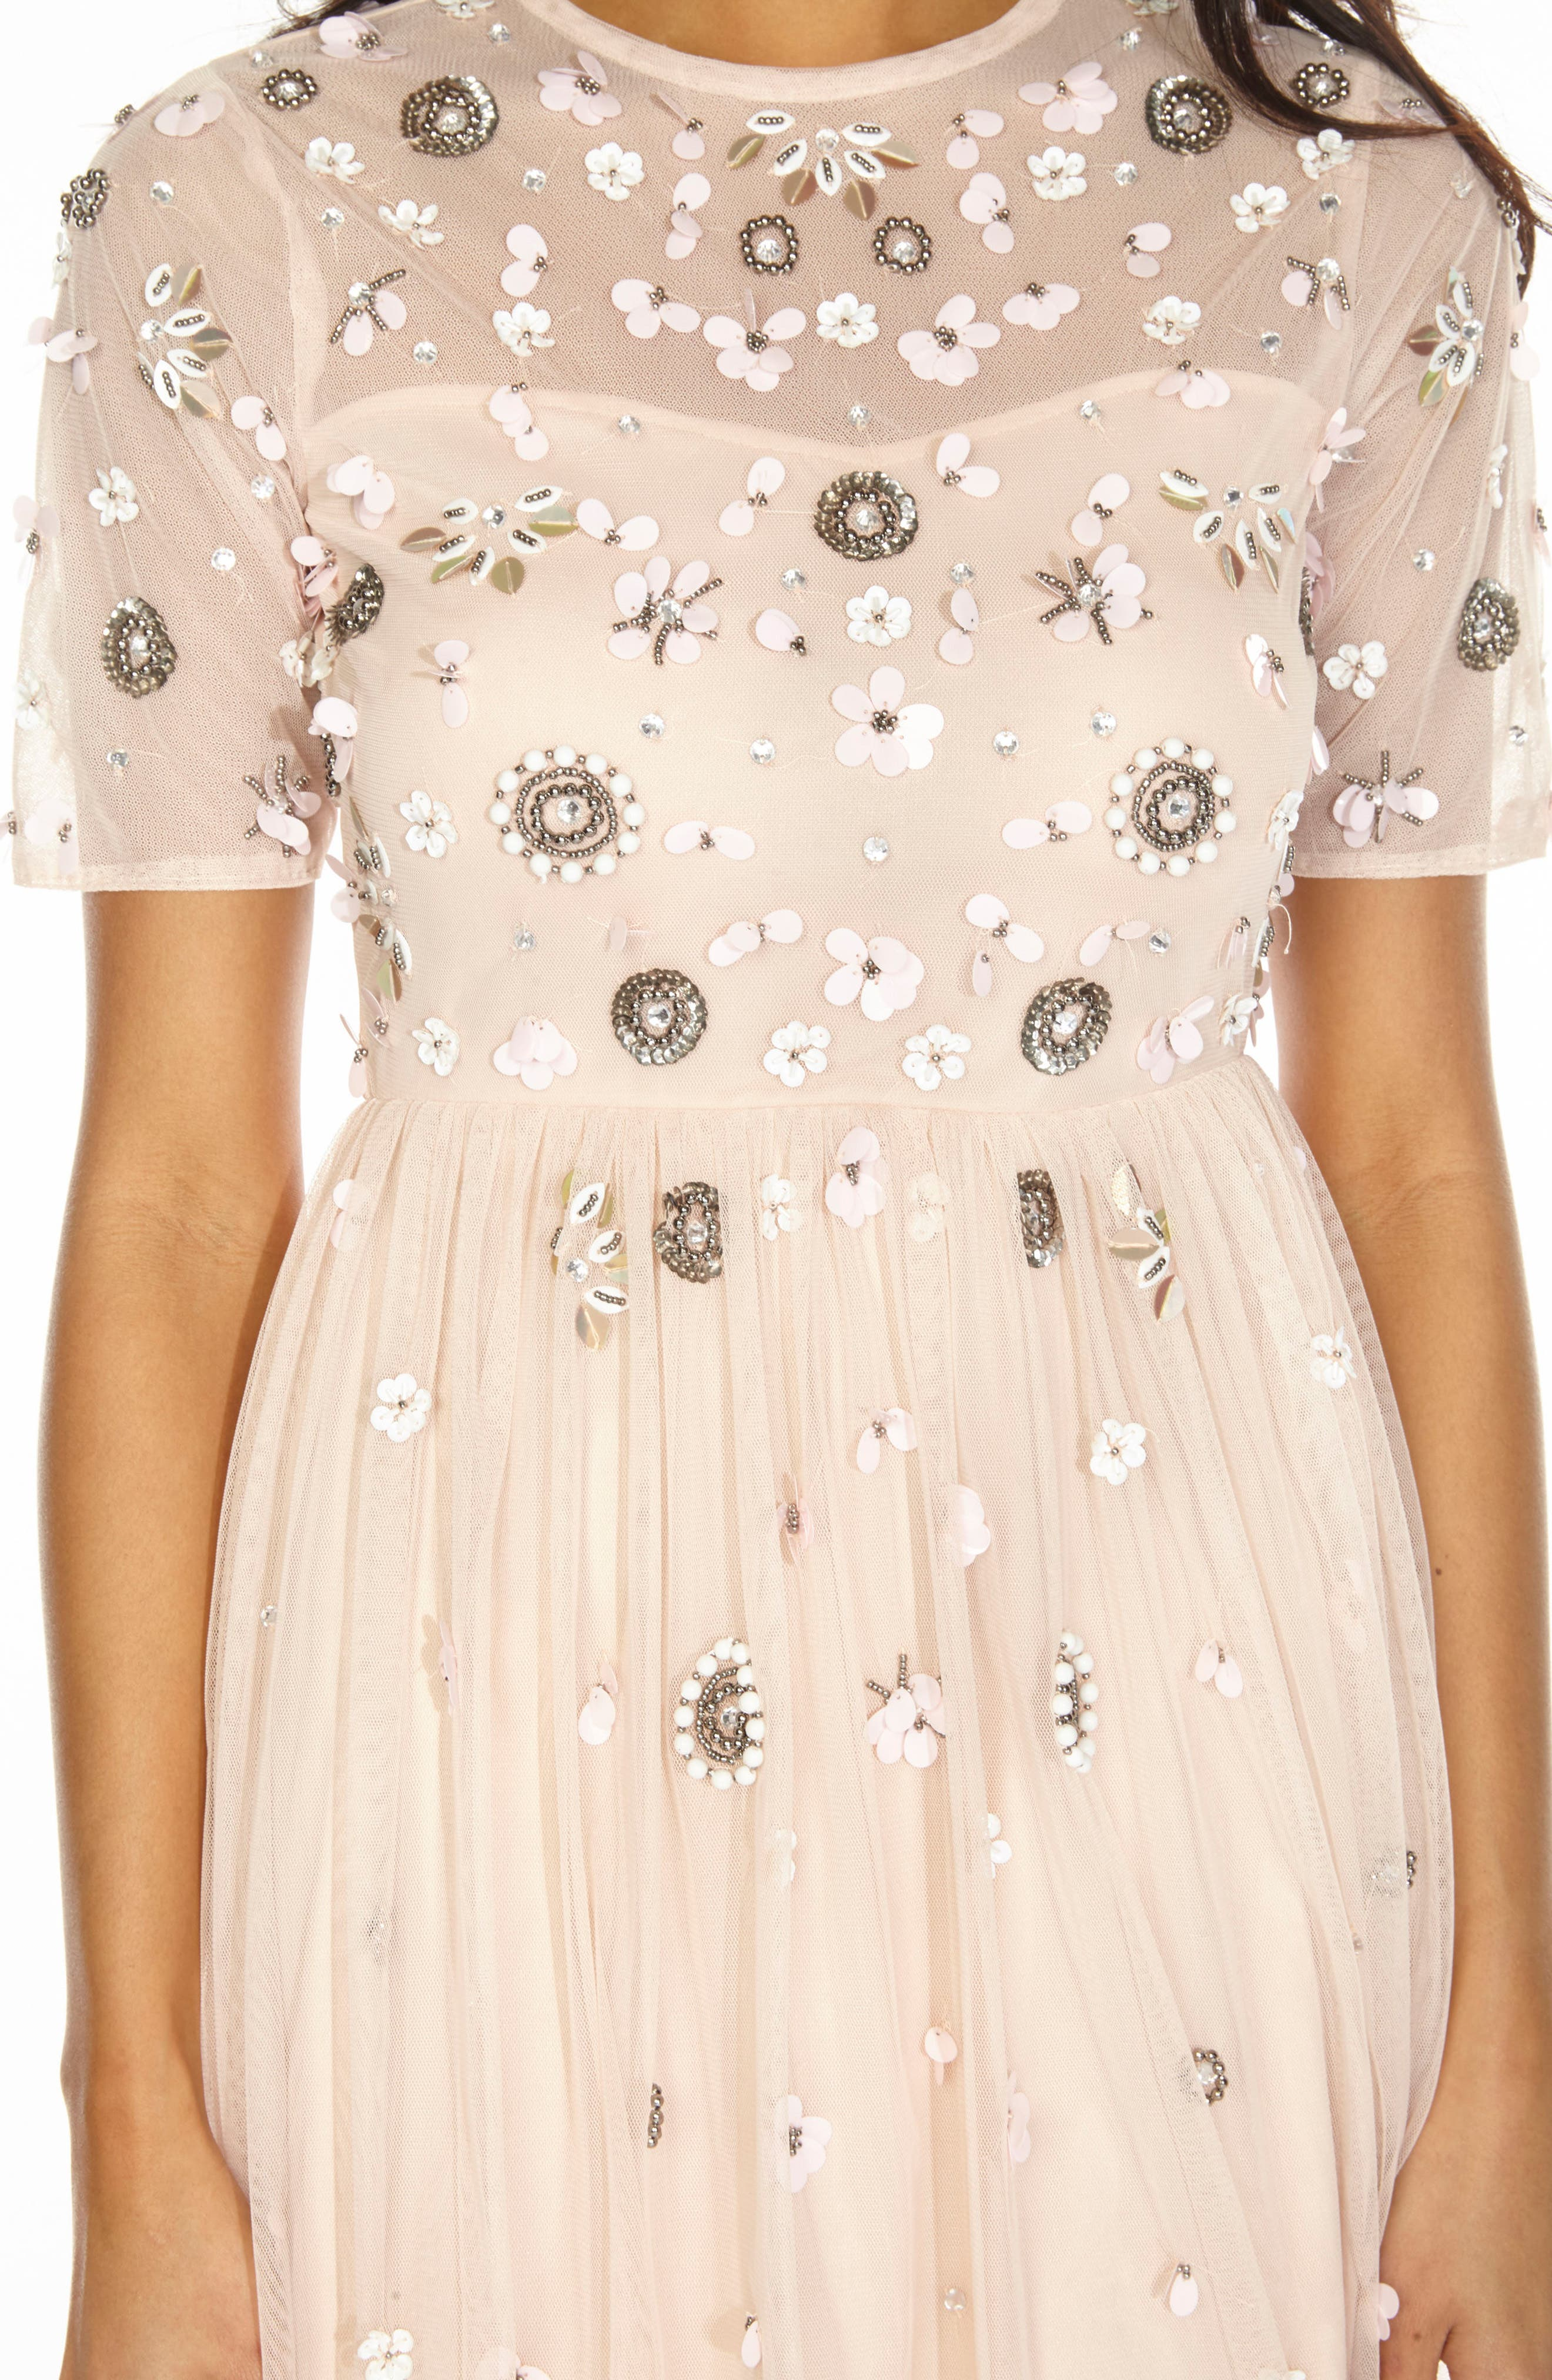 Baby Sequin Midi Dress,                             Alternate thumbnail 3, color,                             NUDE